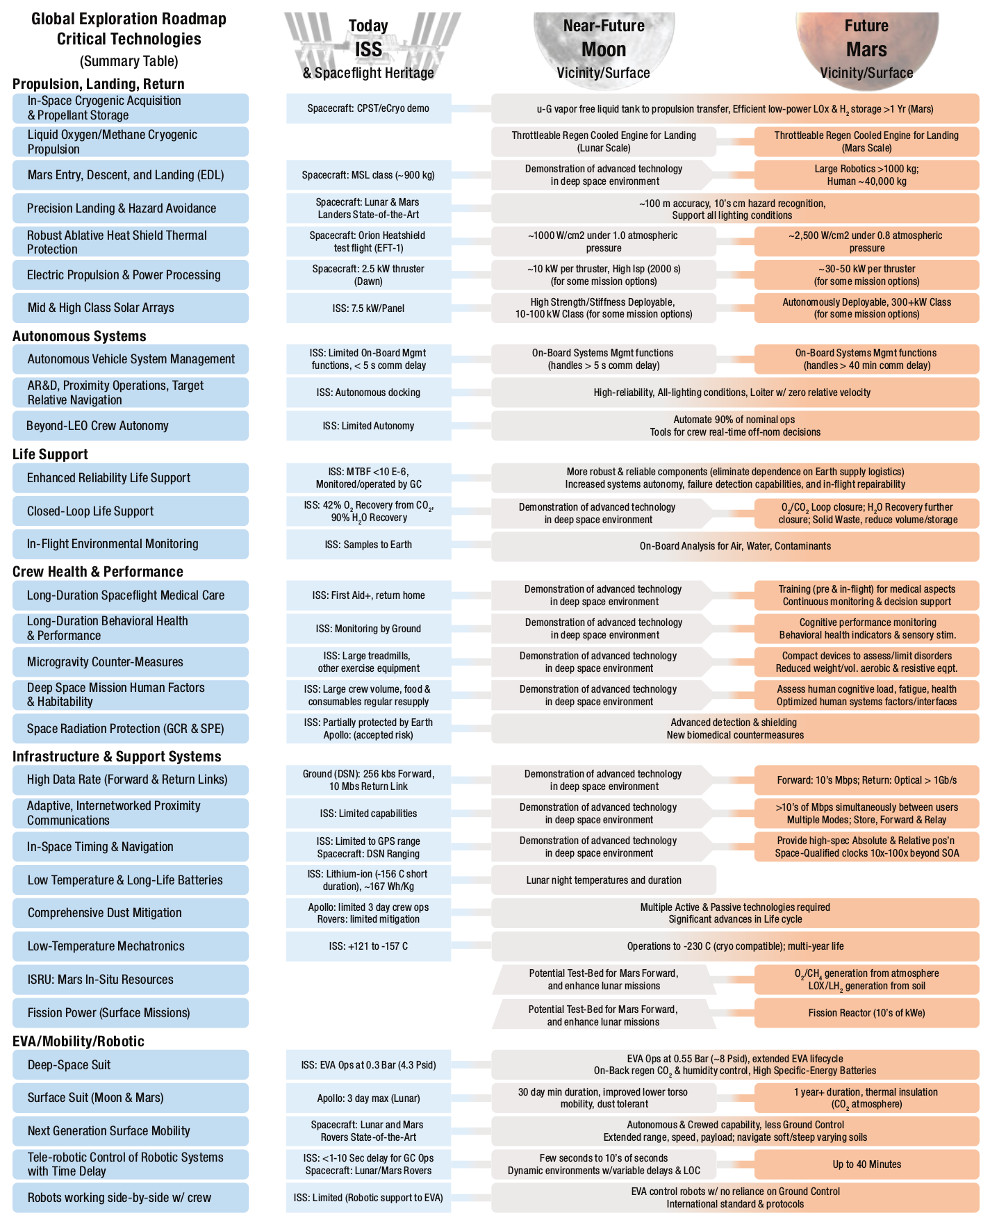 Critical technologies identified in the Global Exploration Roadmap